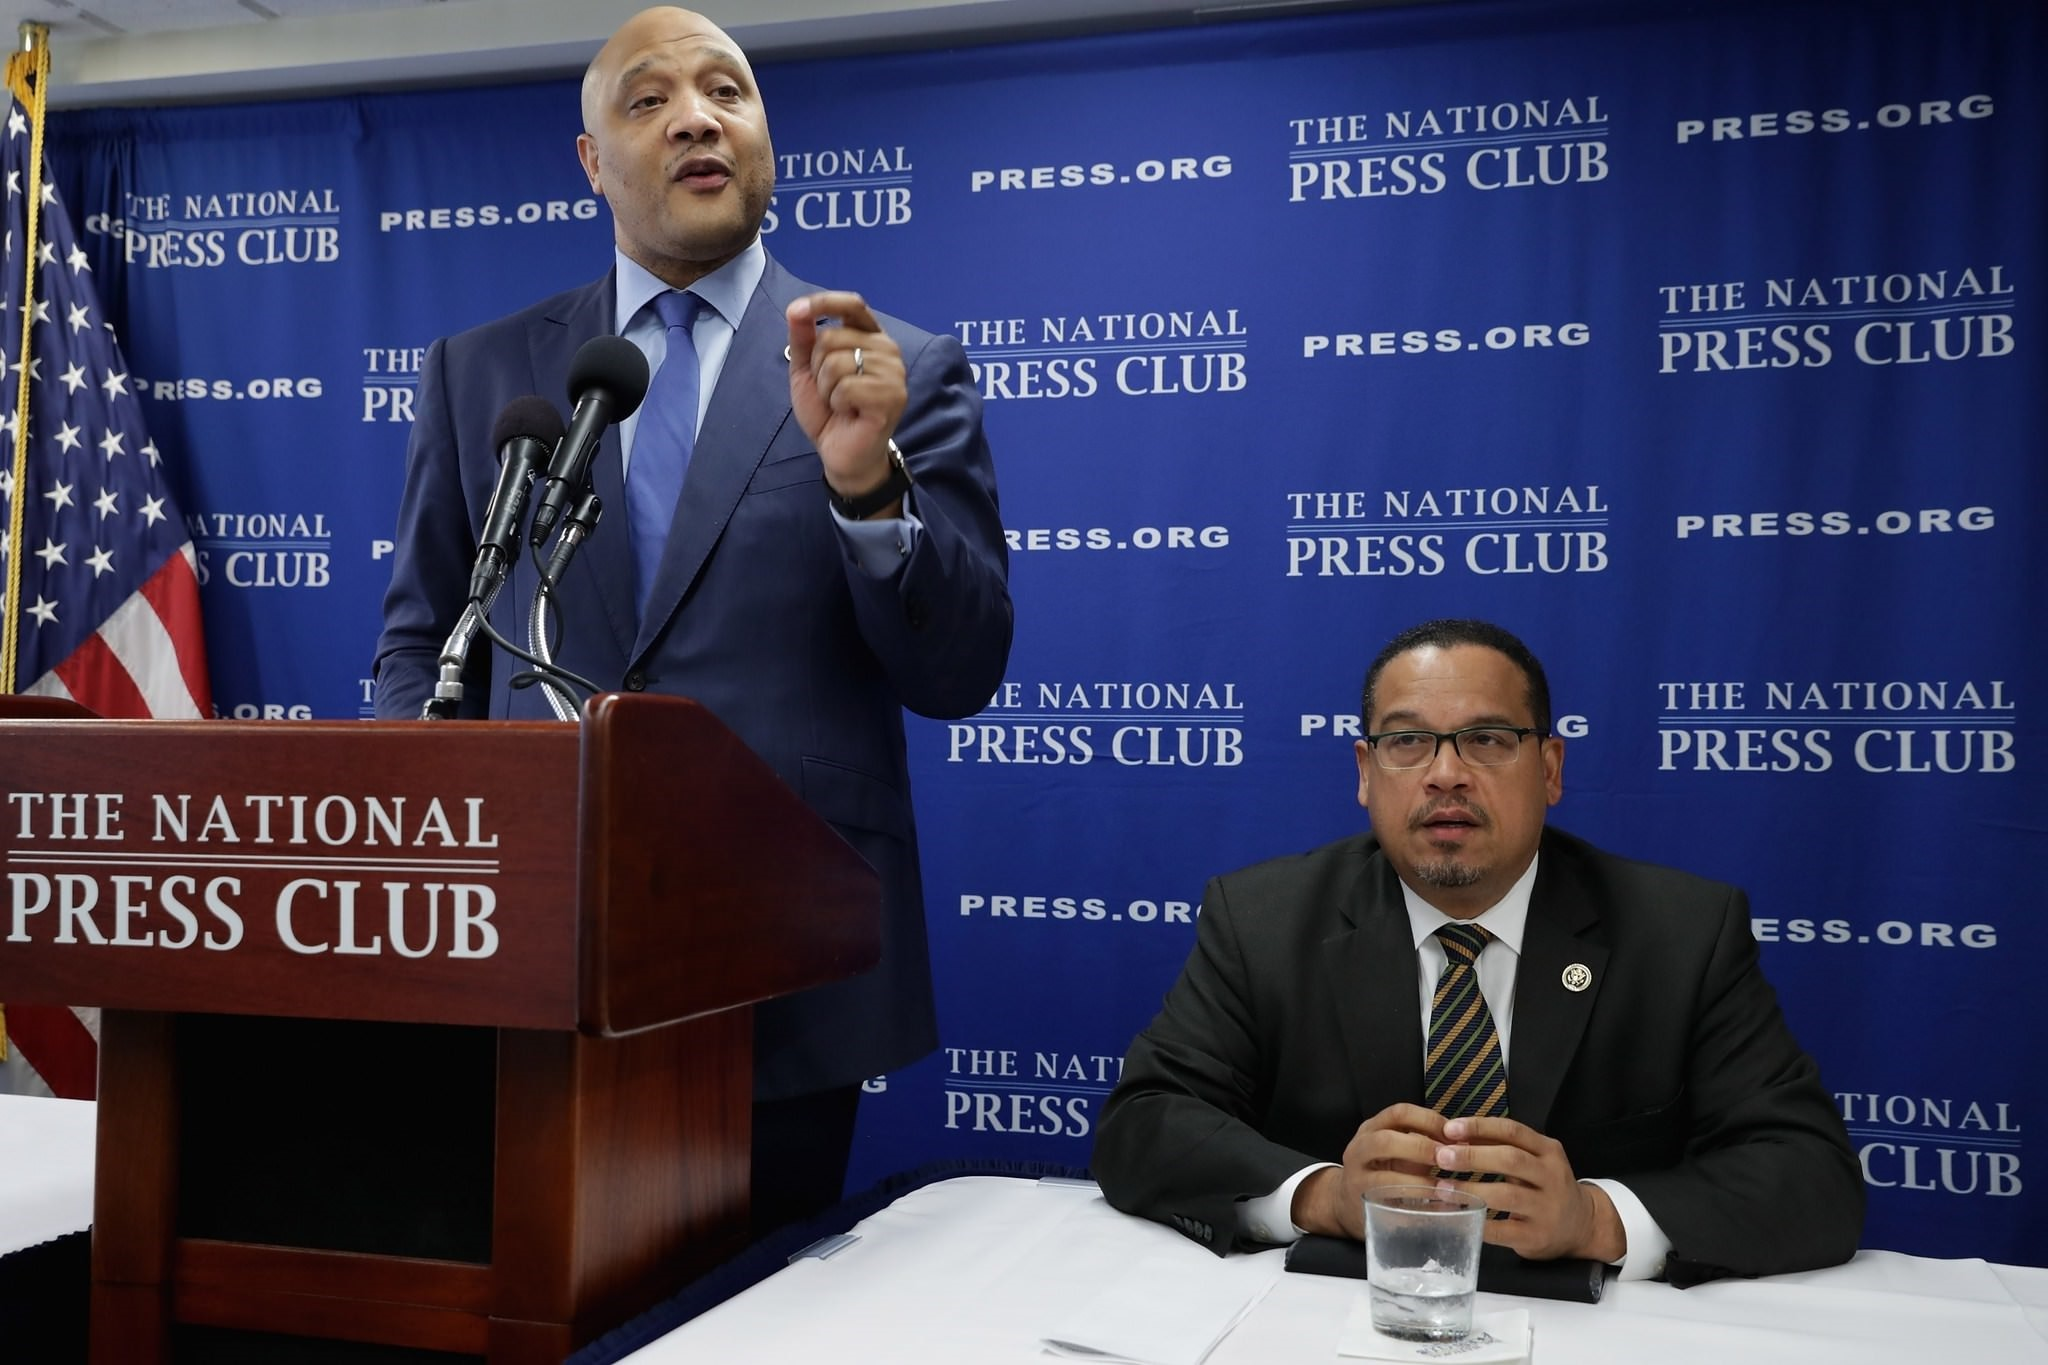 The only two Muslim members of Congres, Rep. Keith Ellison (D-MN) (R) and Rep. Andre Carson (D-IN) (Getty/AFP Photo)